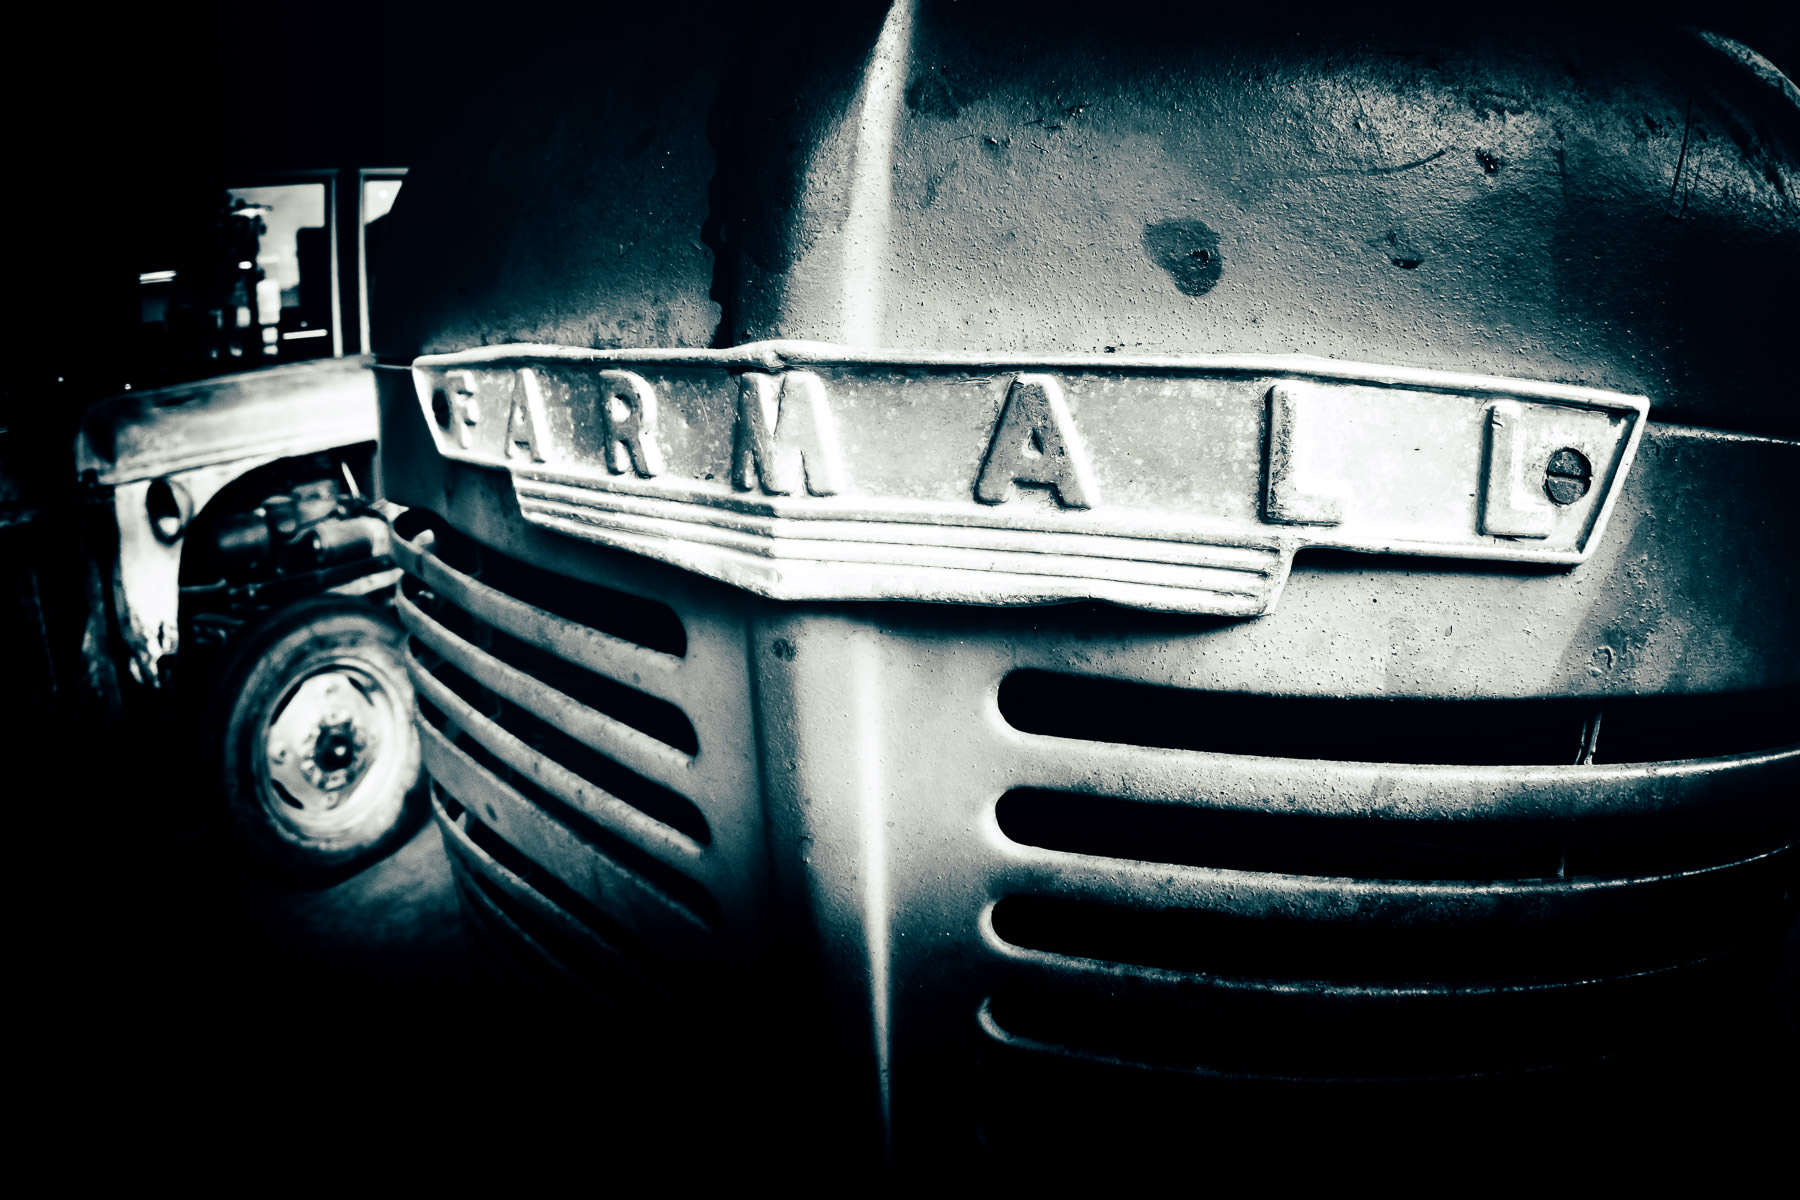 Detail of an old International Harvester Farmall tractor, spotted in Downtown McKinney, Texas.